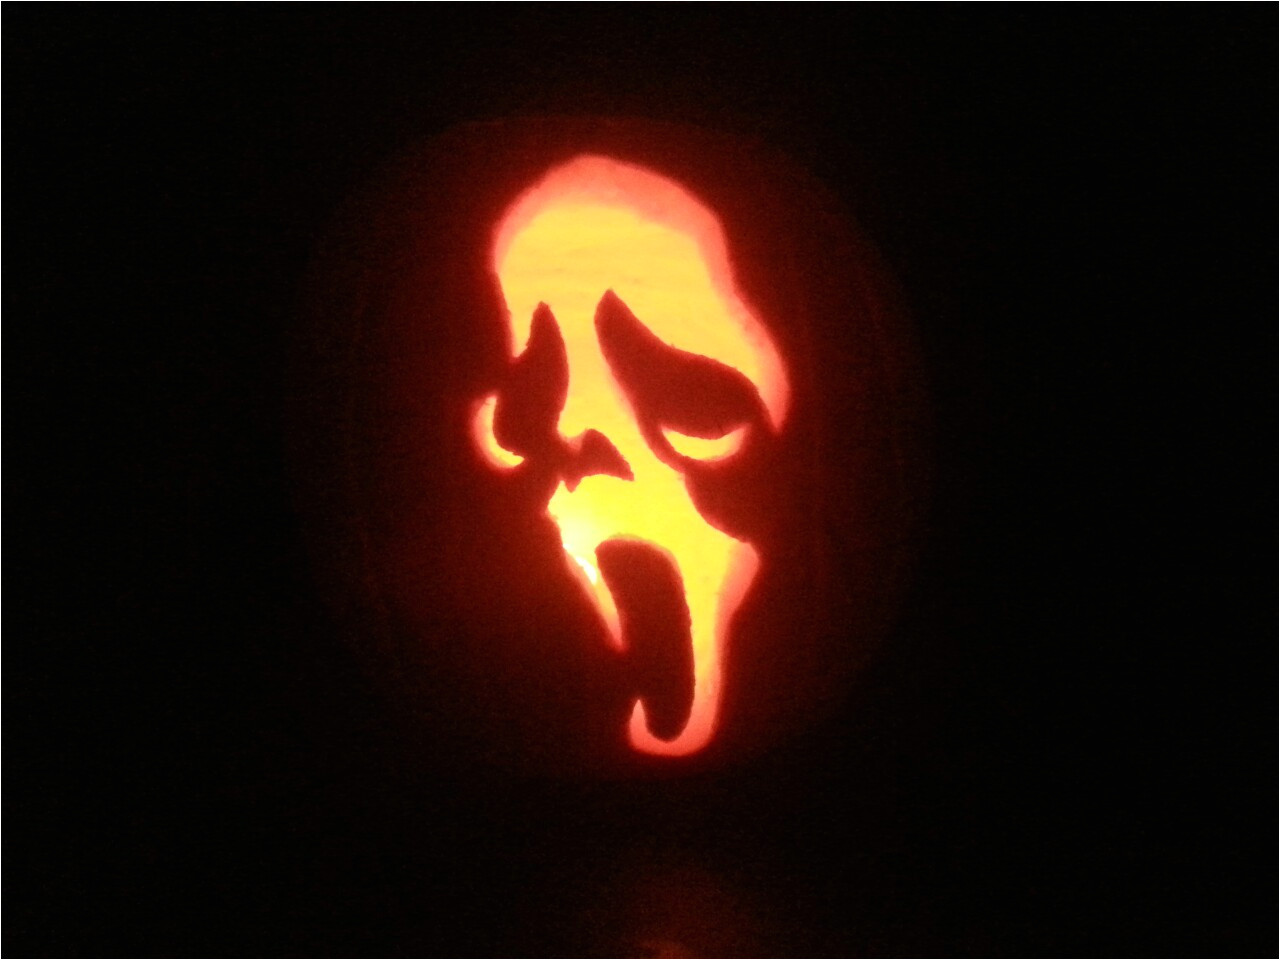 Scream Pumpkin Template Ghostface Scream Pumpkin Carving by Pr0genit0r On